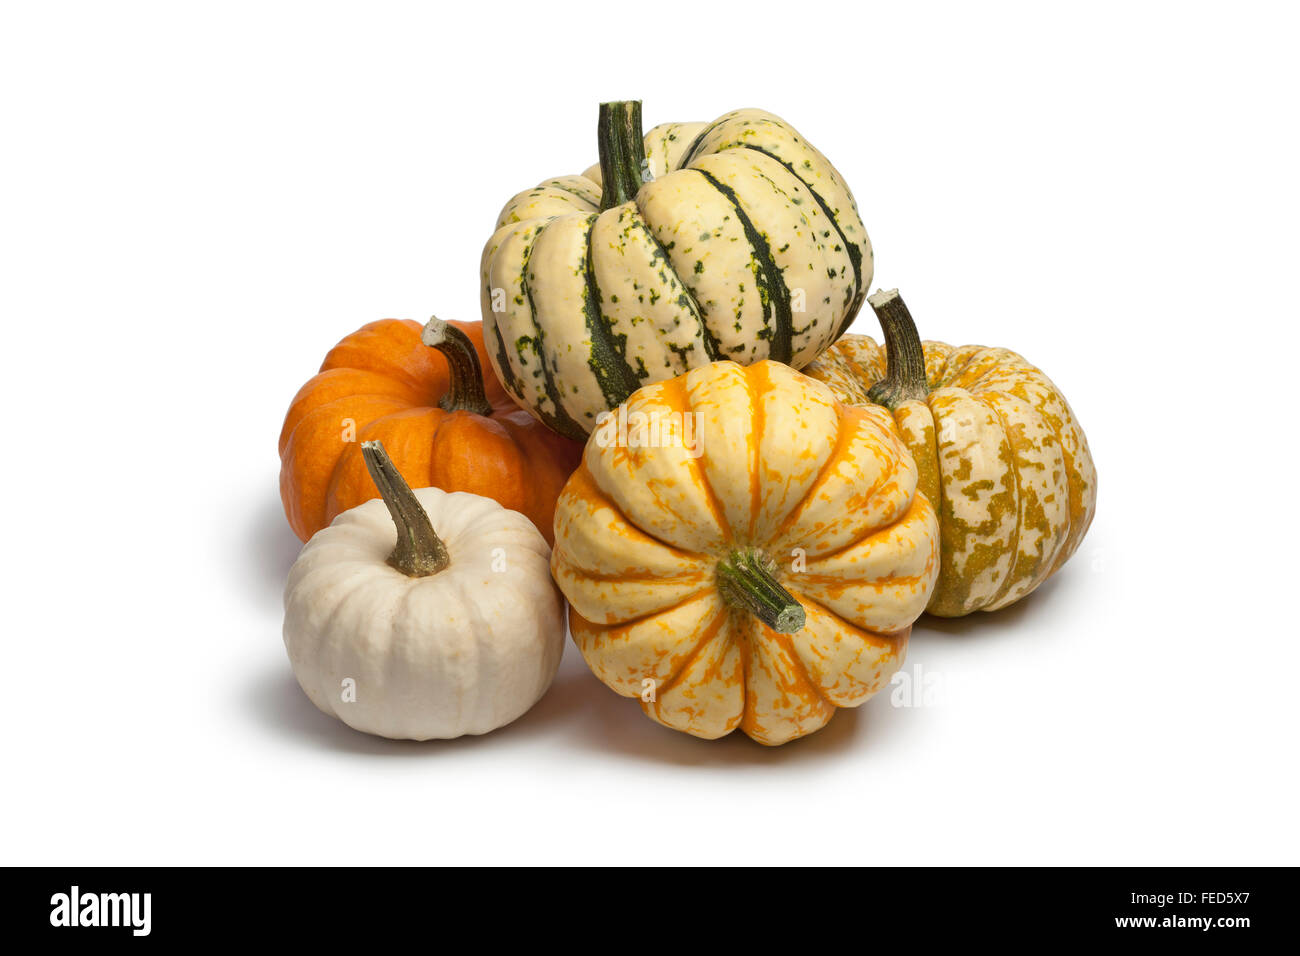 Variaty of baby pumpkins on white background - Stock Image